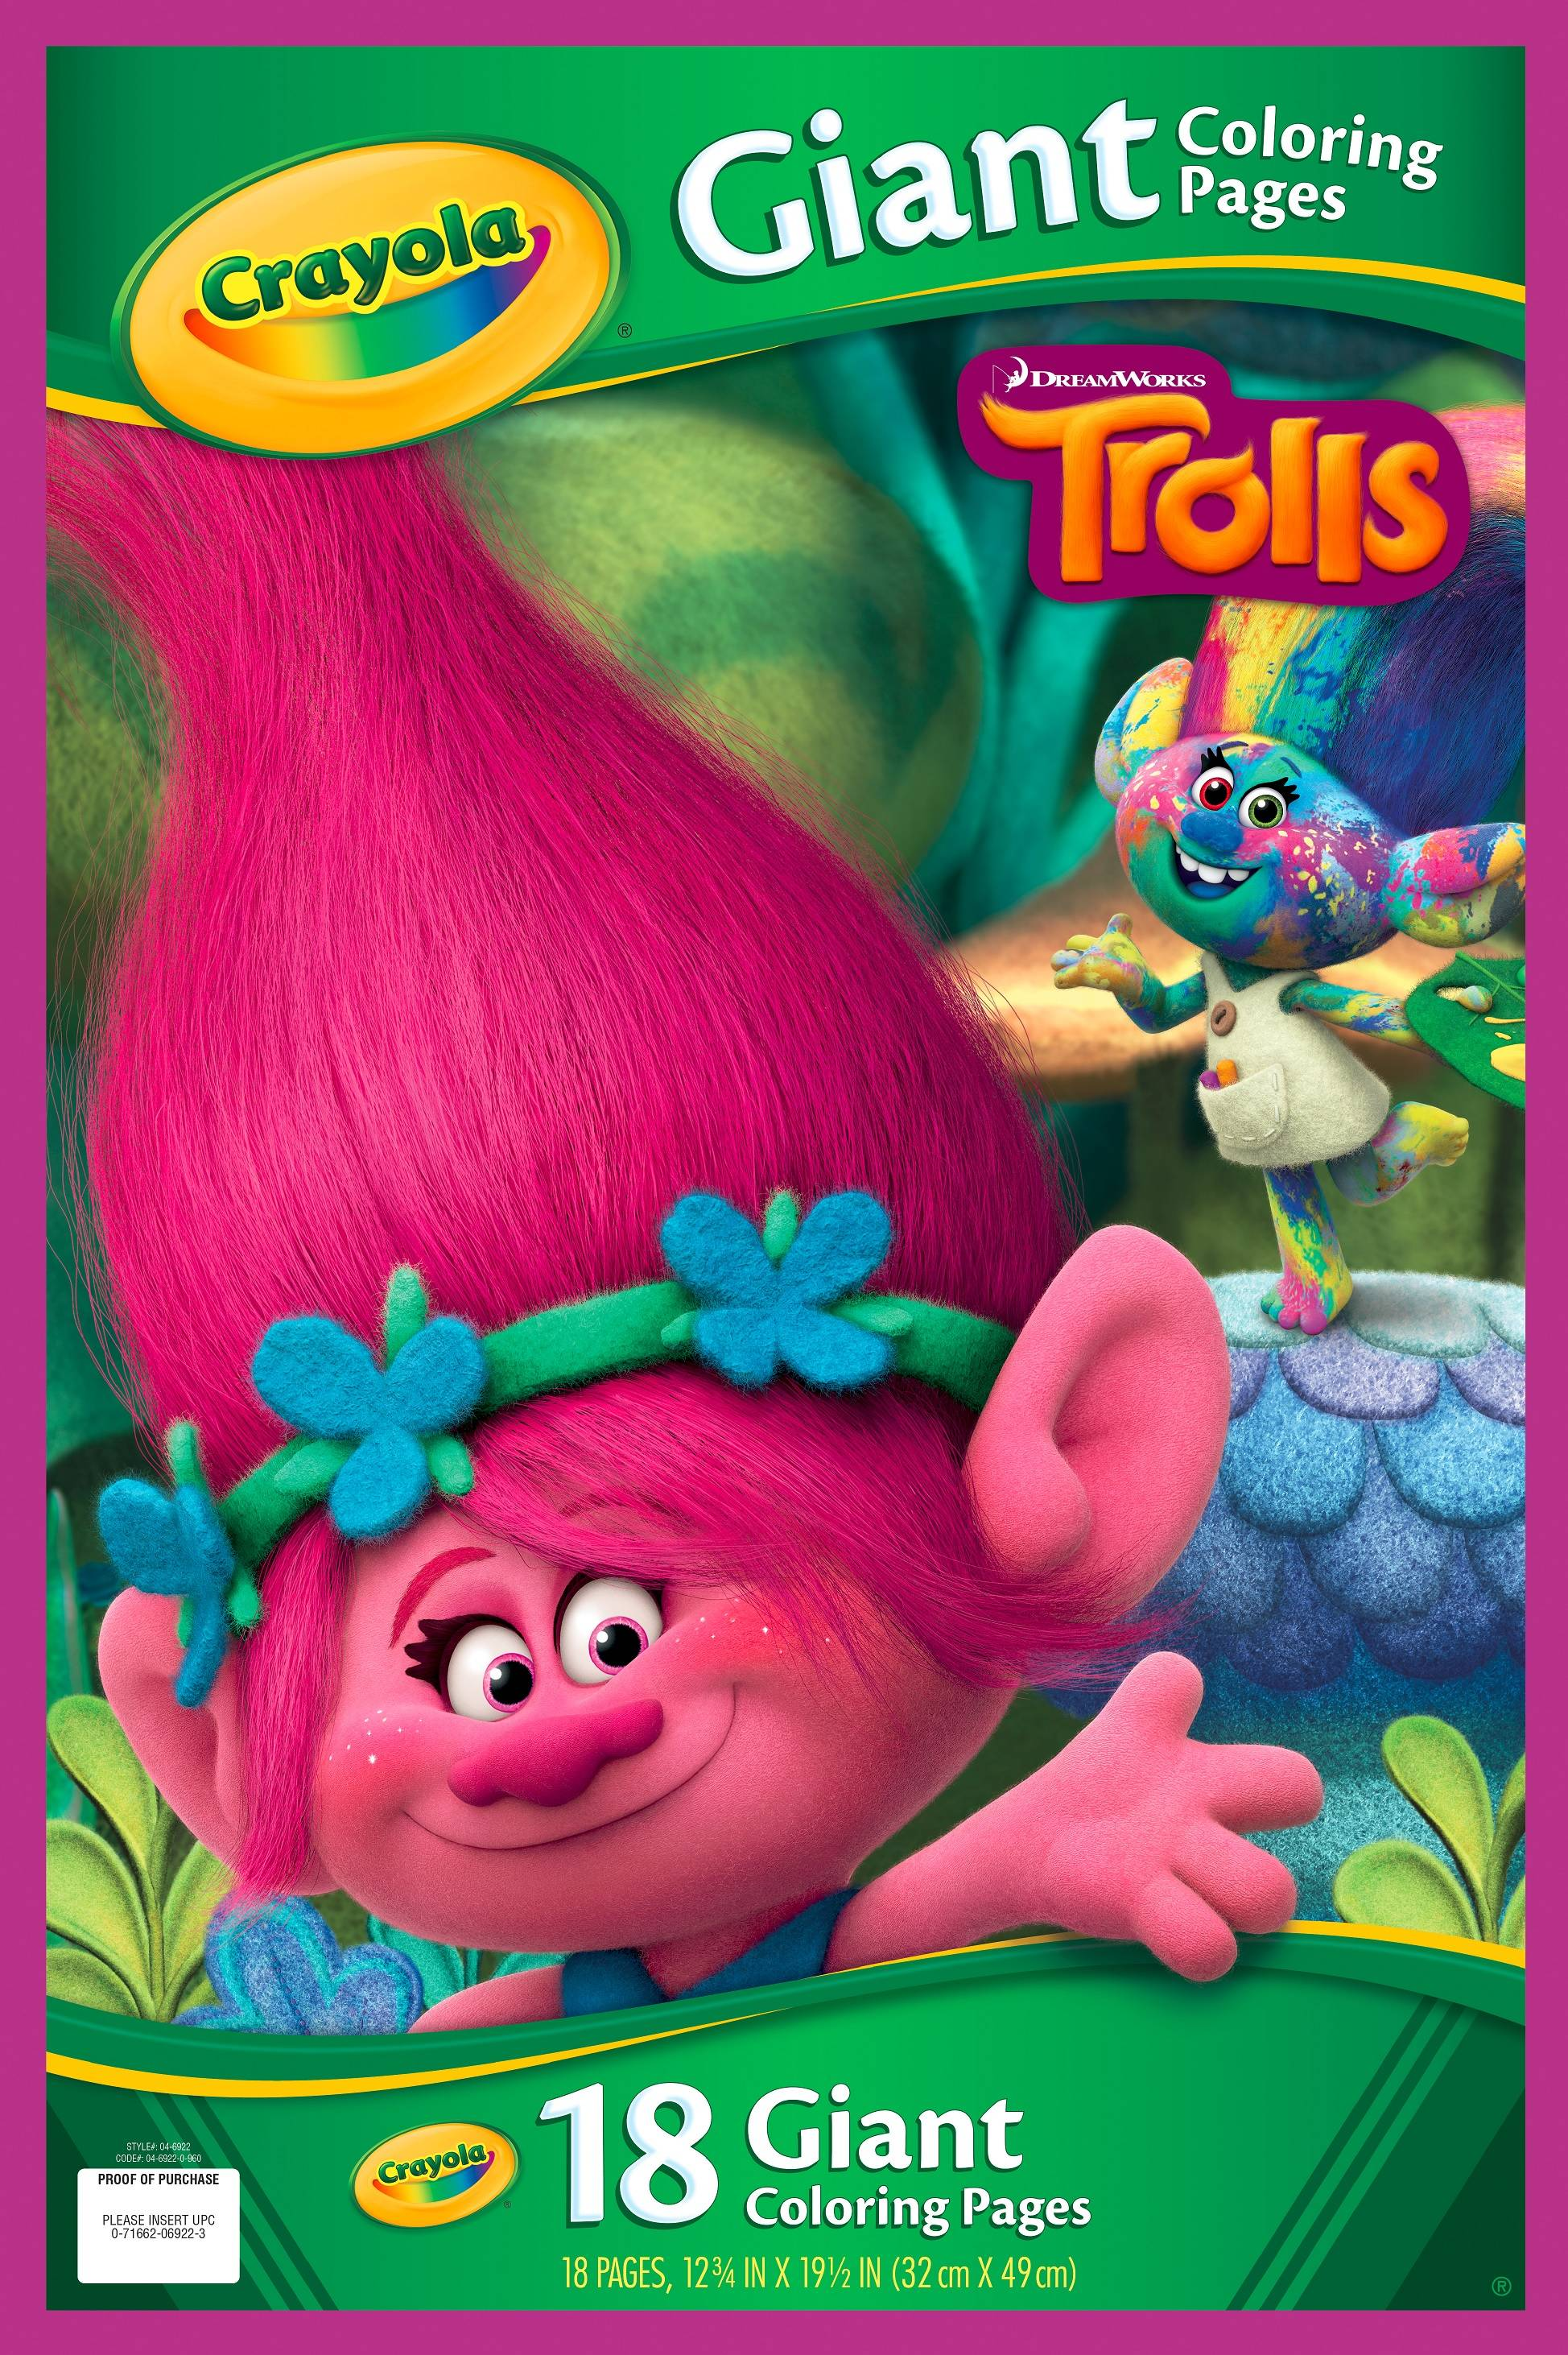 crayola giant coloring pages trolls 18 pages walmartcom